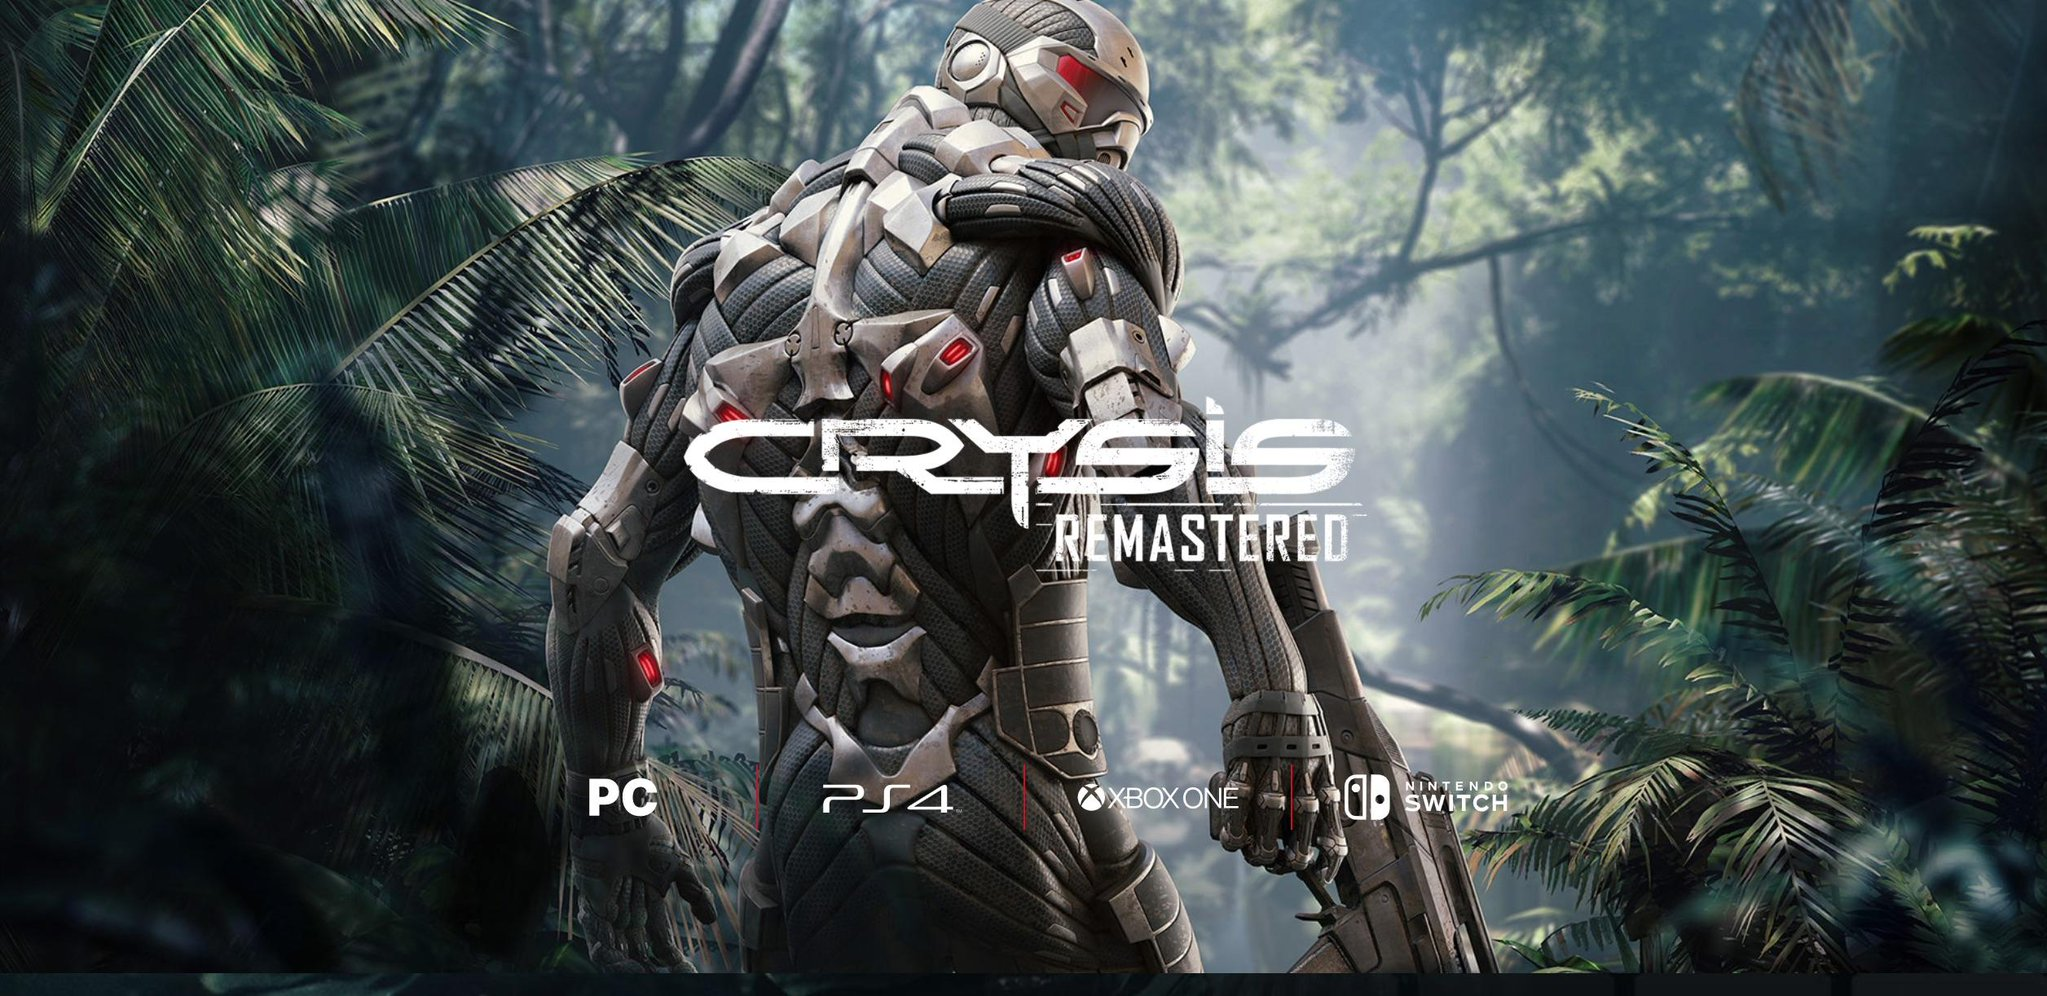 Crysis: Remastered estará disponible en PlayStation 4 a partir de esta semana